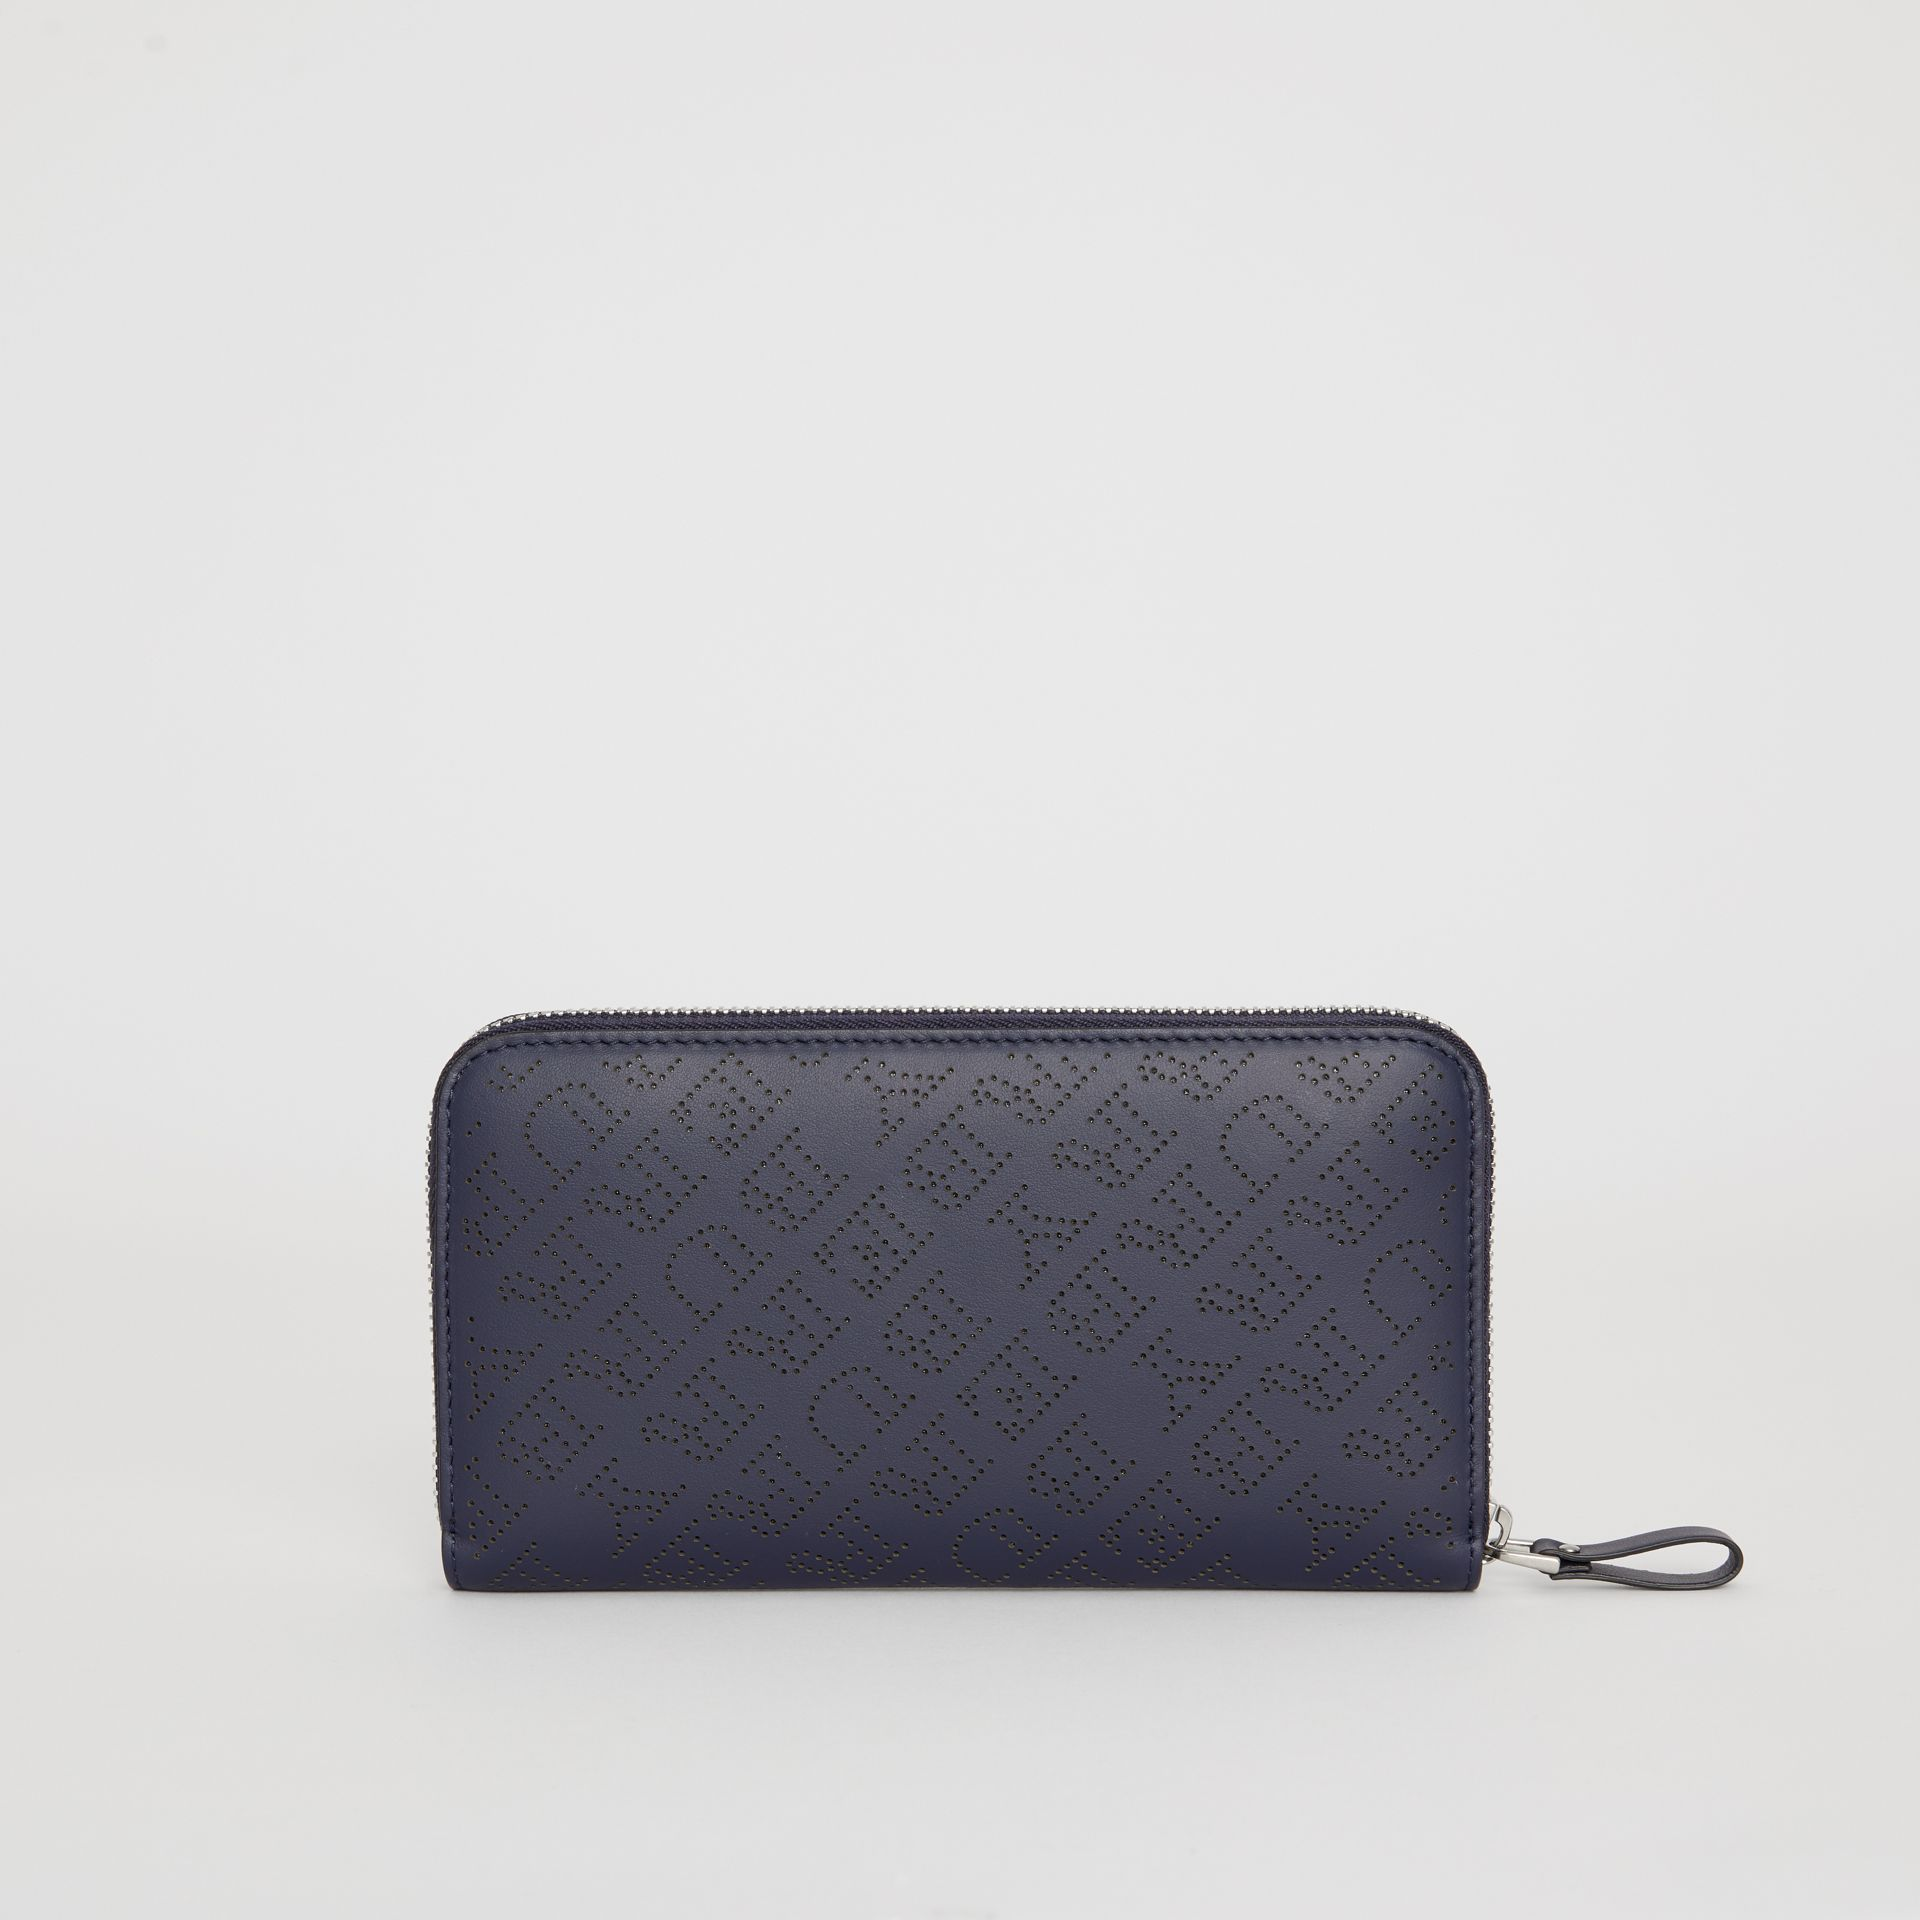 Perforated Leather Ziparound Wallet in Navy - Women | Burberry - gallery image 5